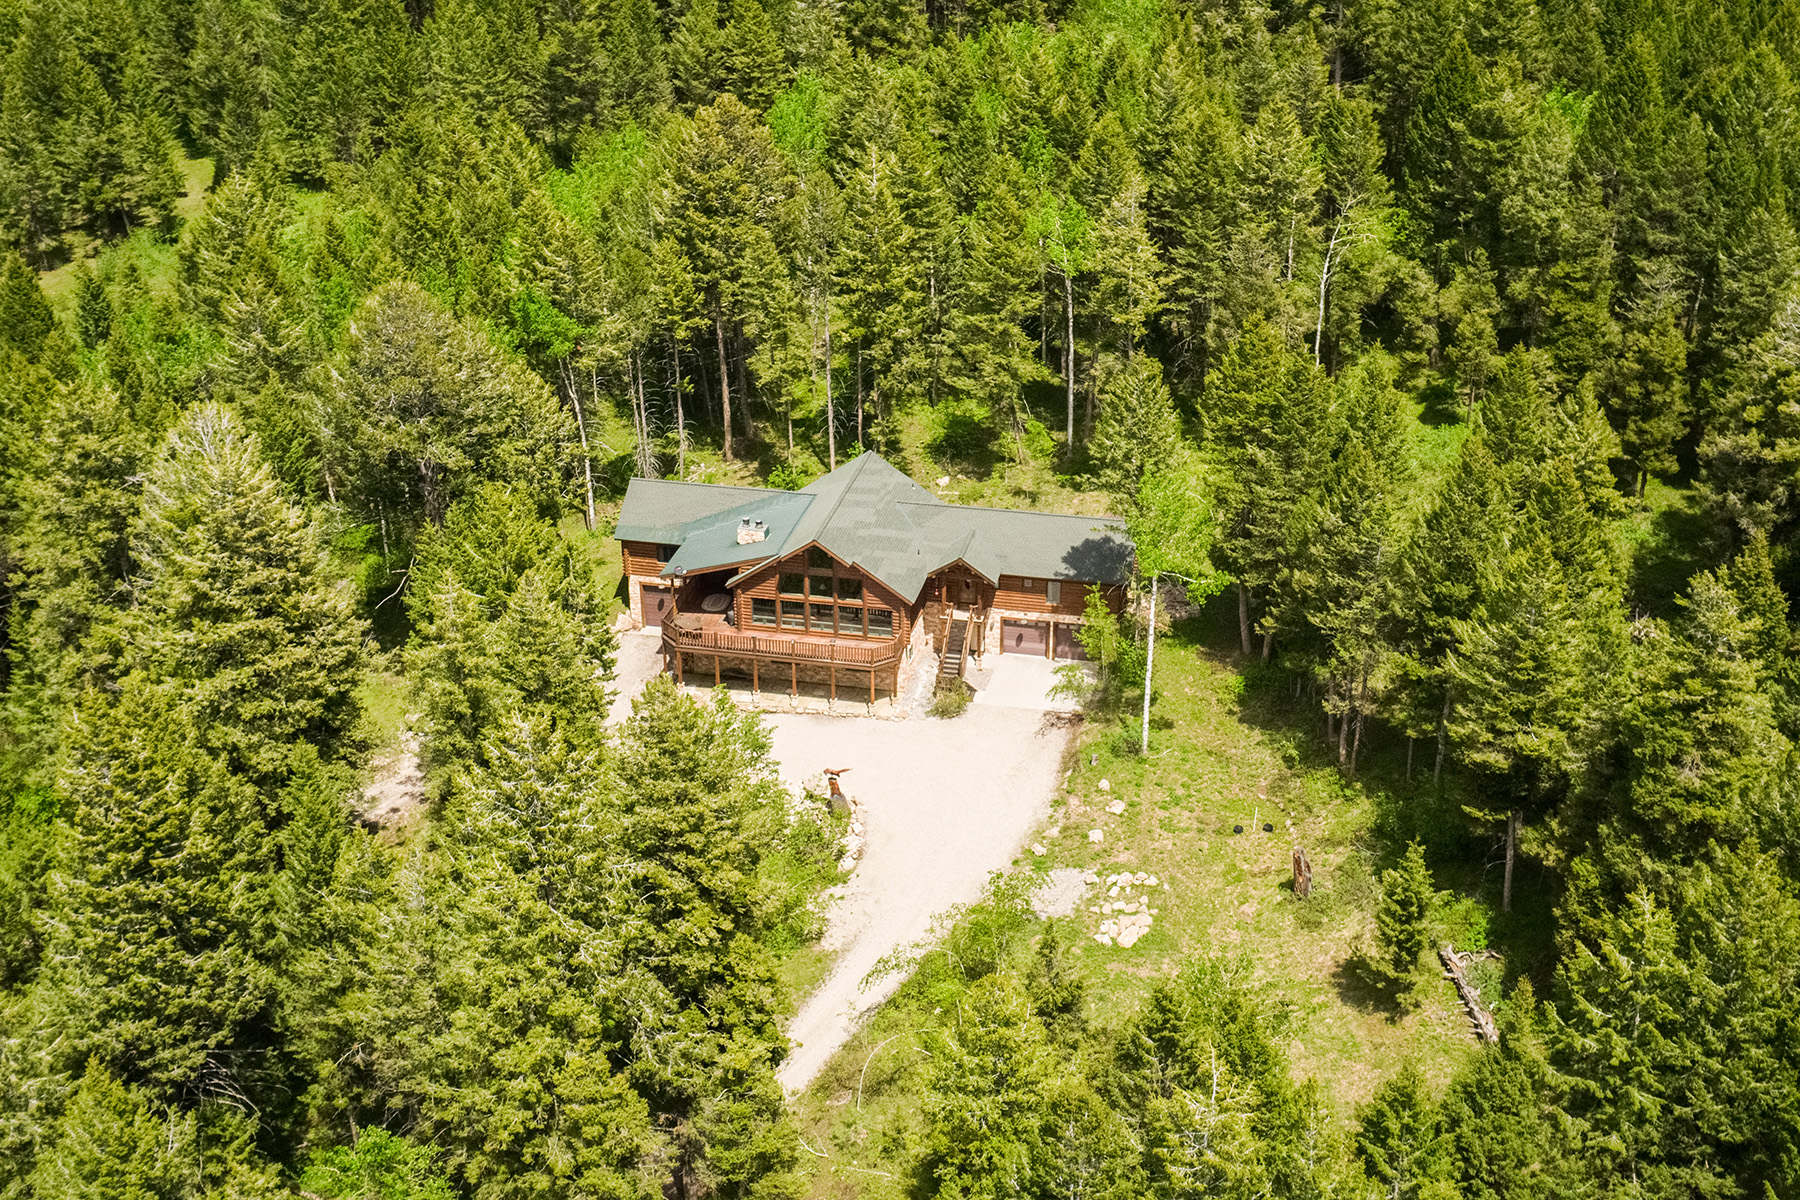 Single Family Homes pour l Vente à Private Mountain Retreat in the Trees 3415 Sorensen Creek Dr Victor, Idaho 83455 États-Unis